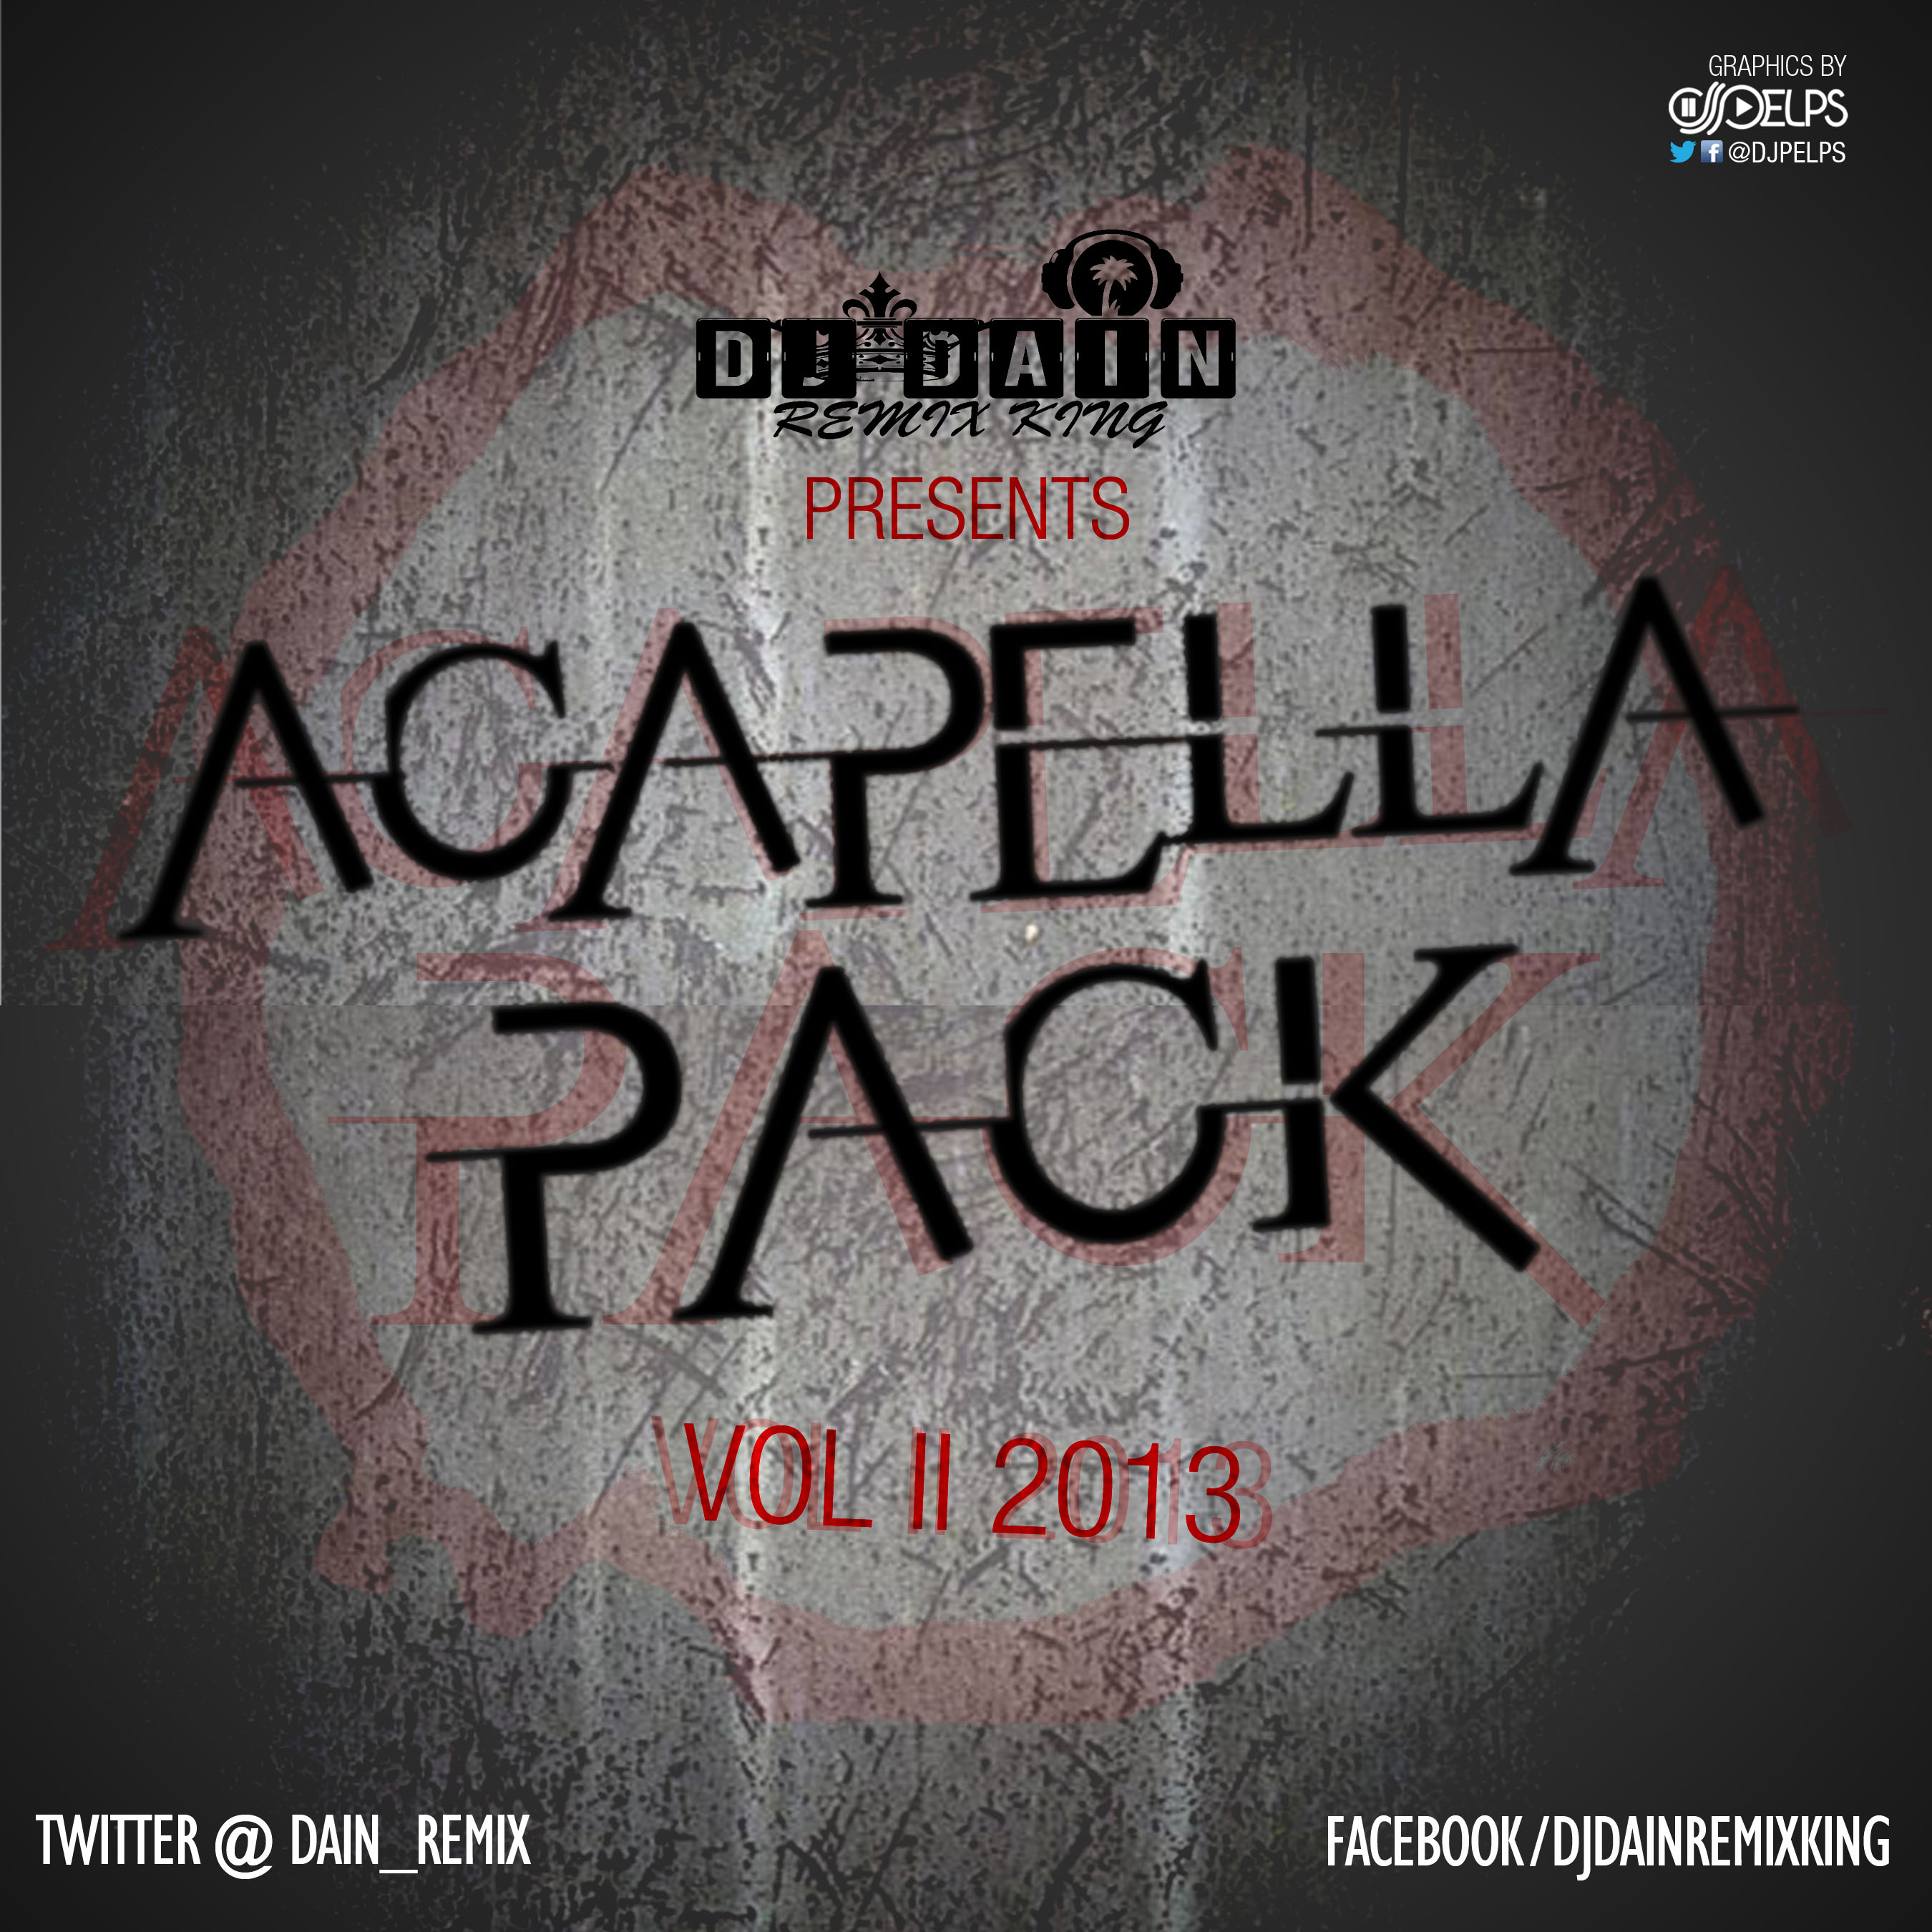 DJ-DAIN-ACCAPELLA-PACK